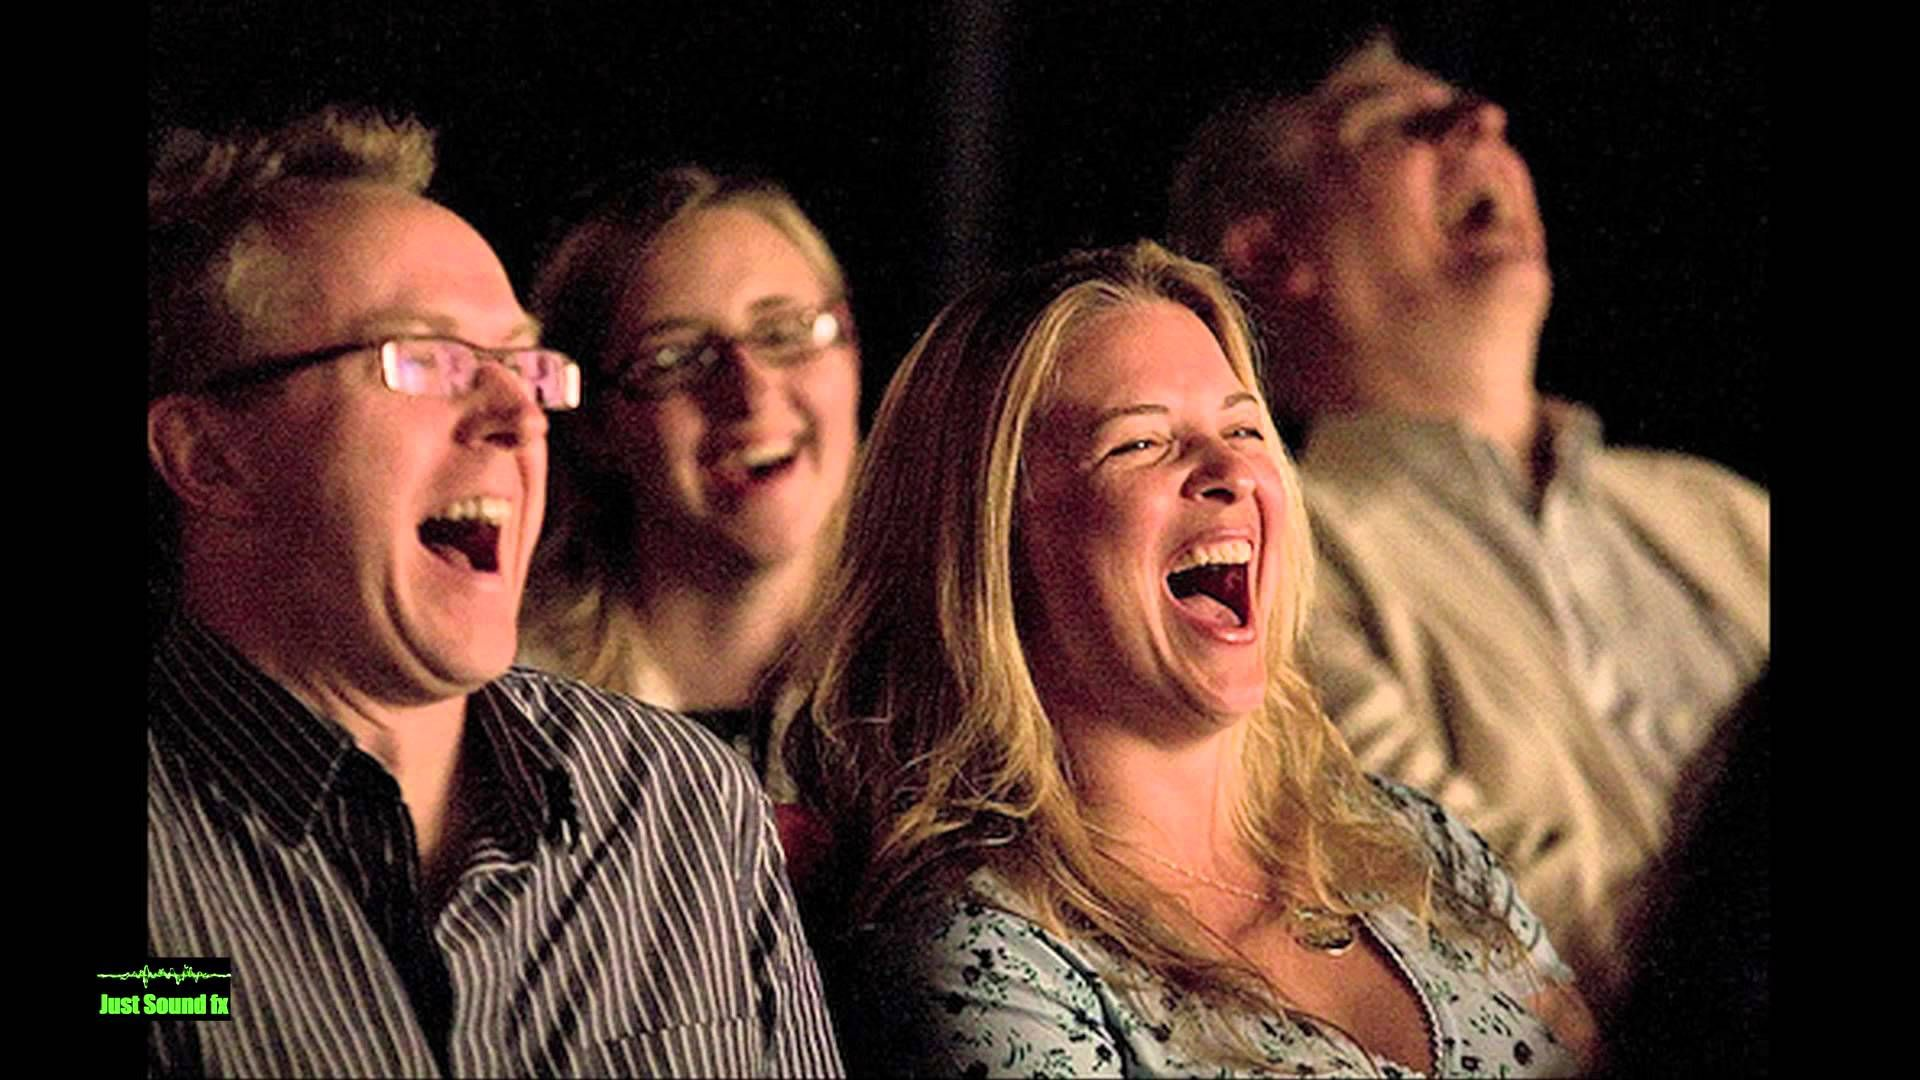 Crowd Laughing Together YouTube Ted cruz, Laugh, Laughter